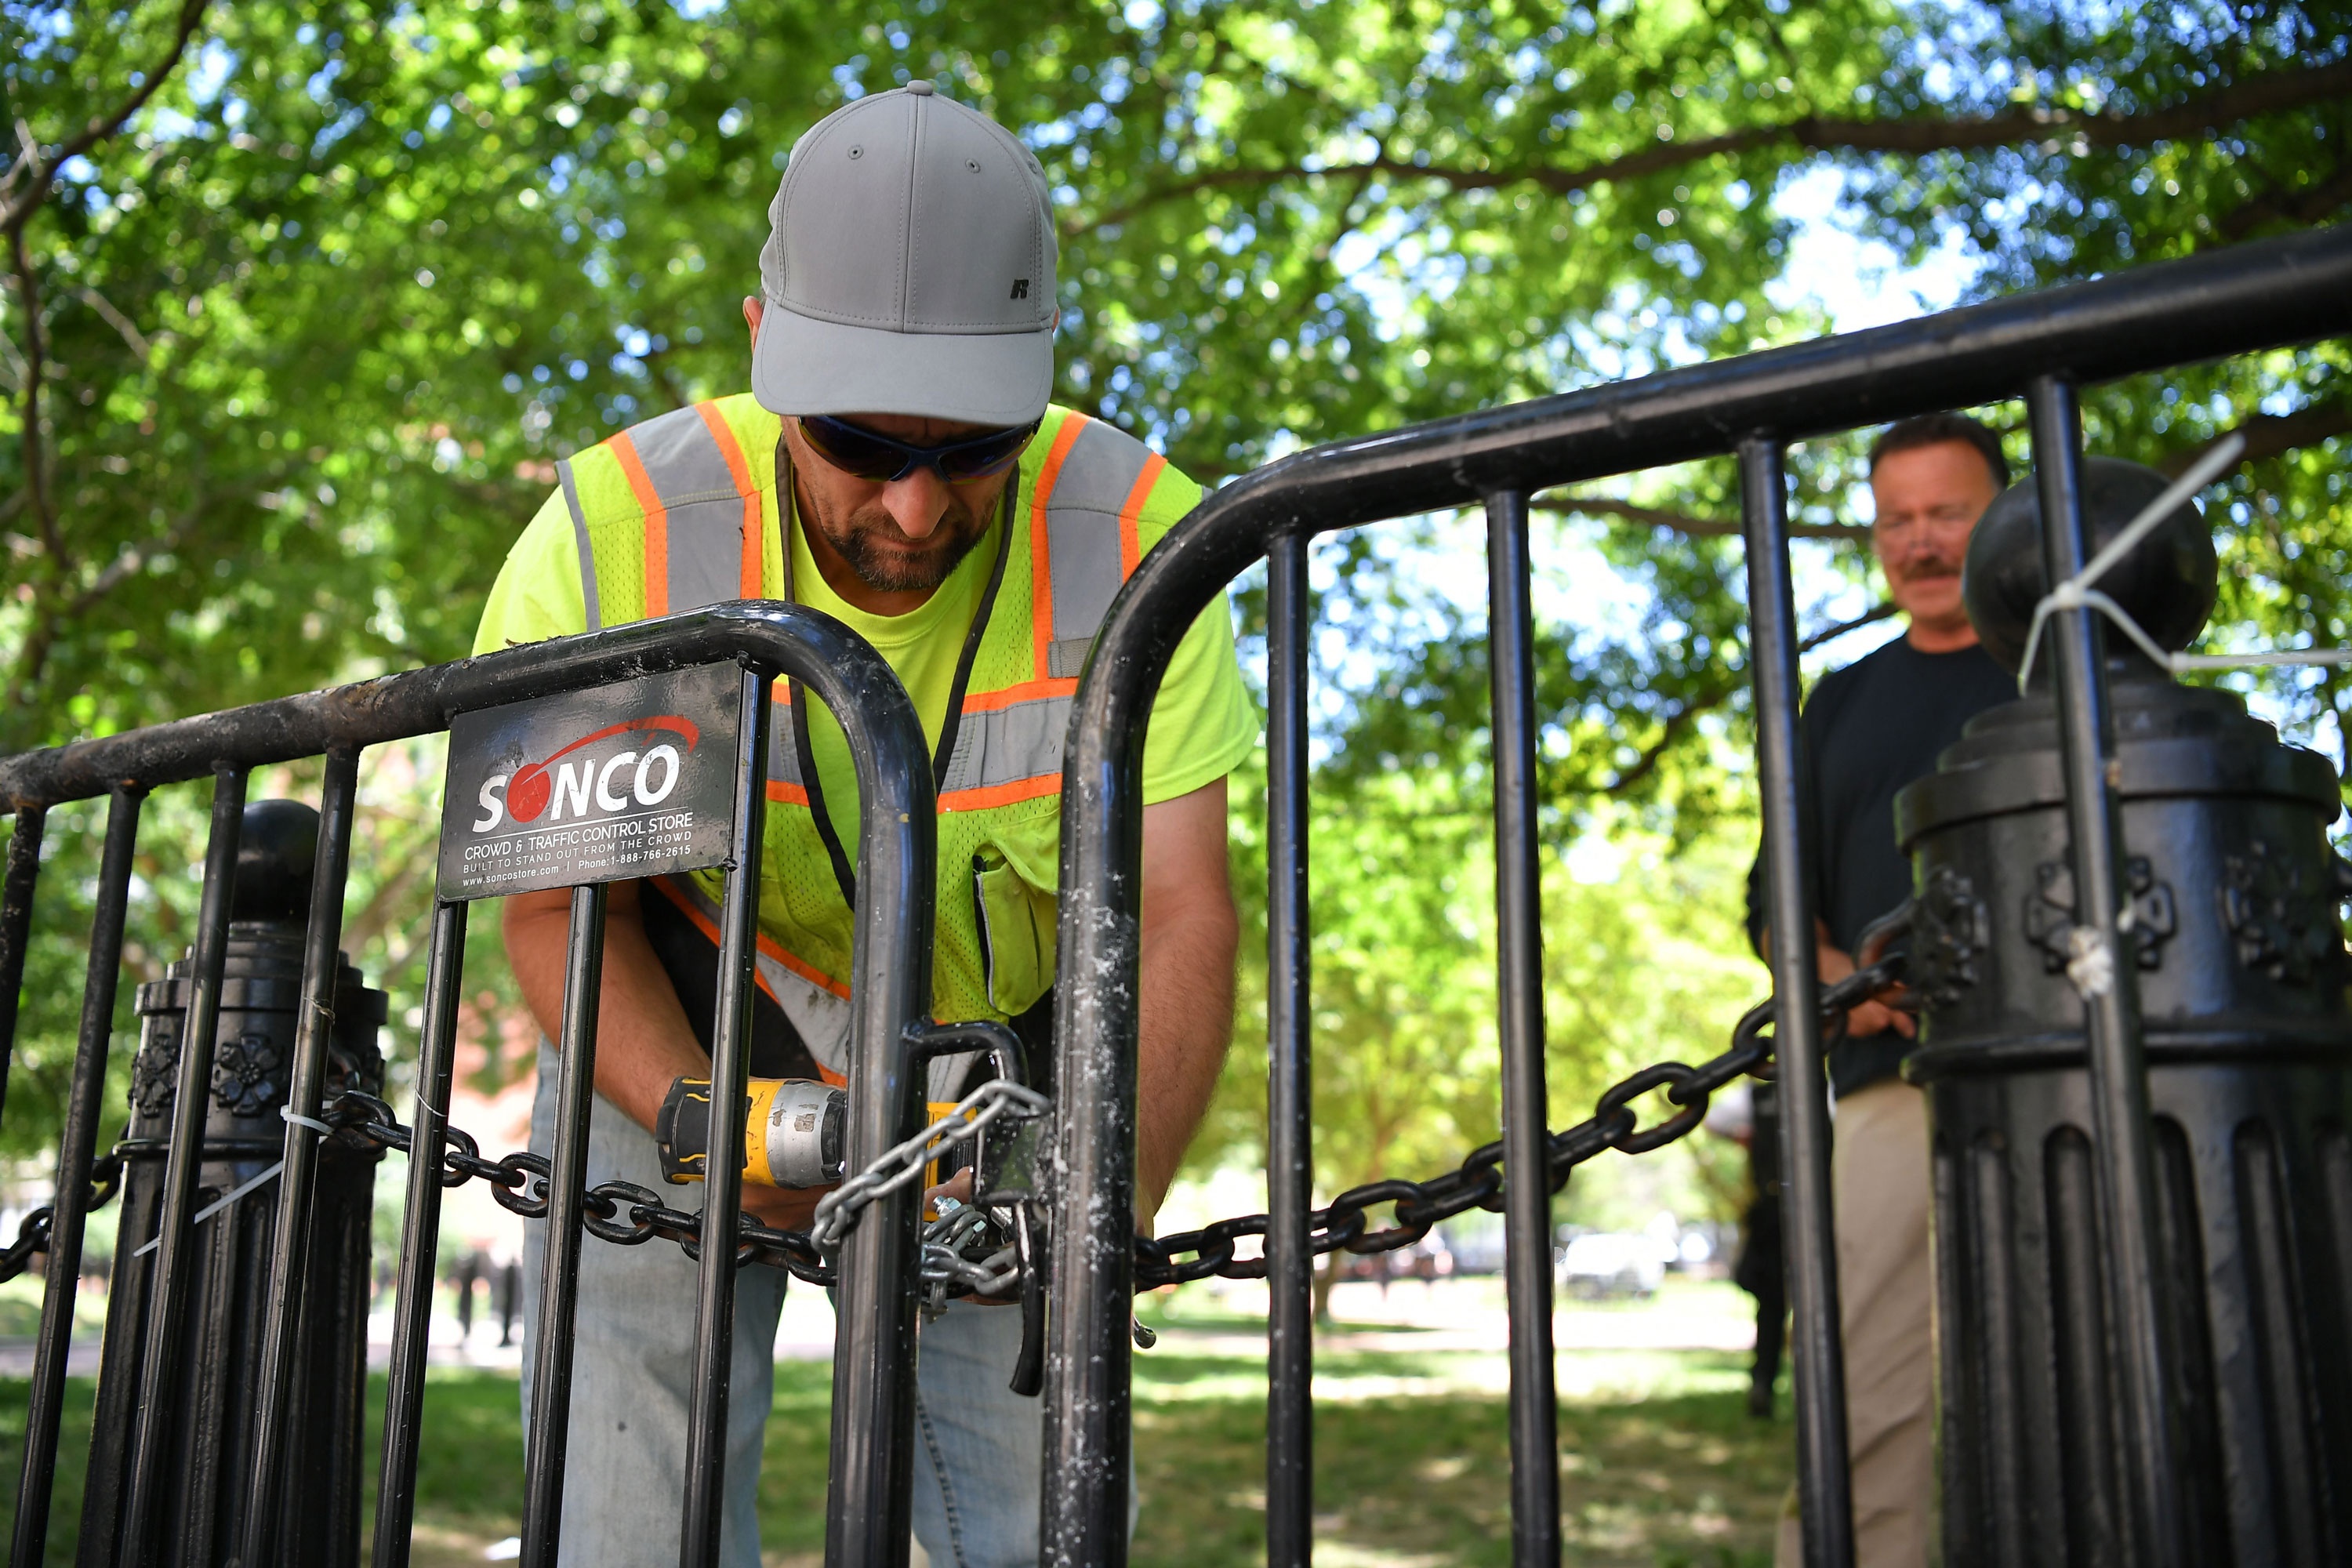 A worker reinforces fencing around Lafayette Square near the White House in Washington on June 1.